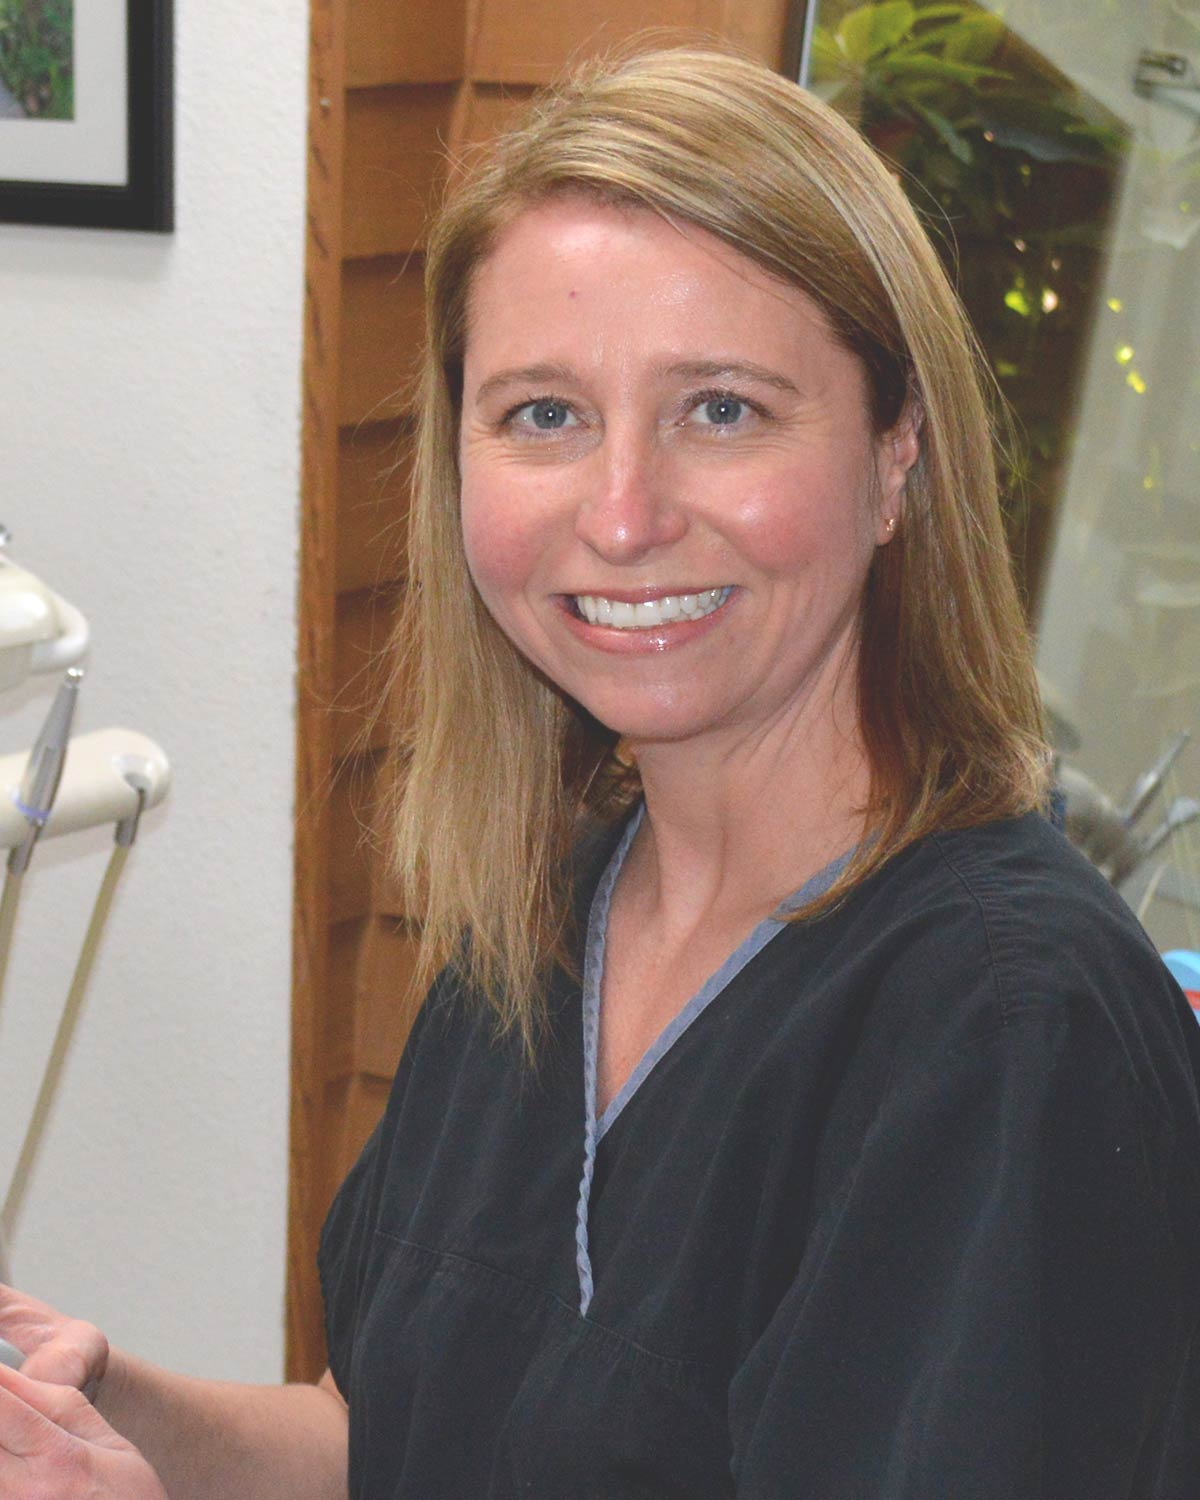 Deanne Feller, Registered Dental Hygienist at Michael B. Litchfield, DMD, Family Dentistry